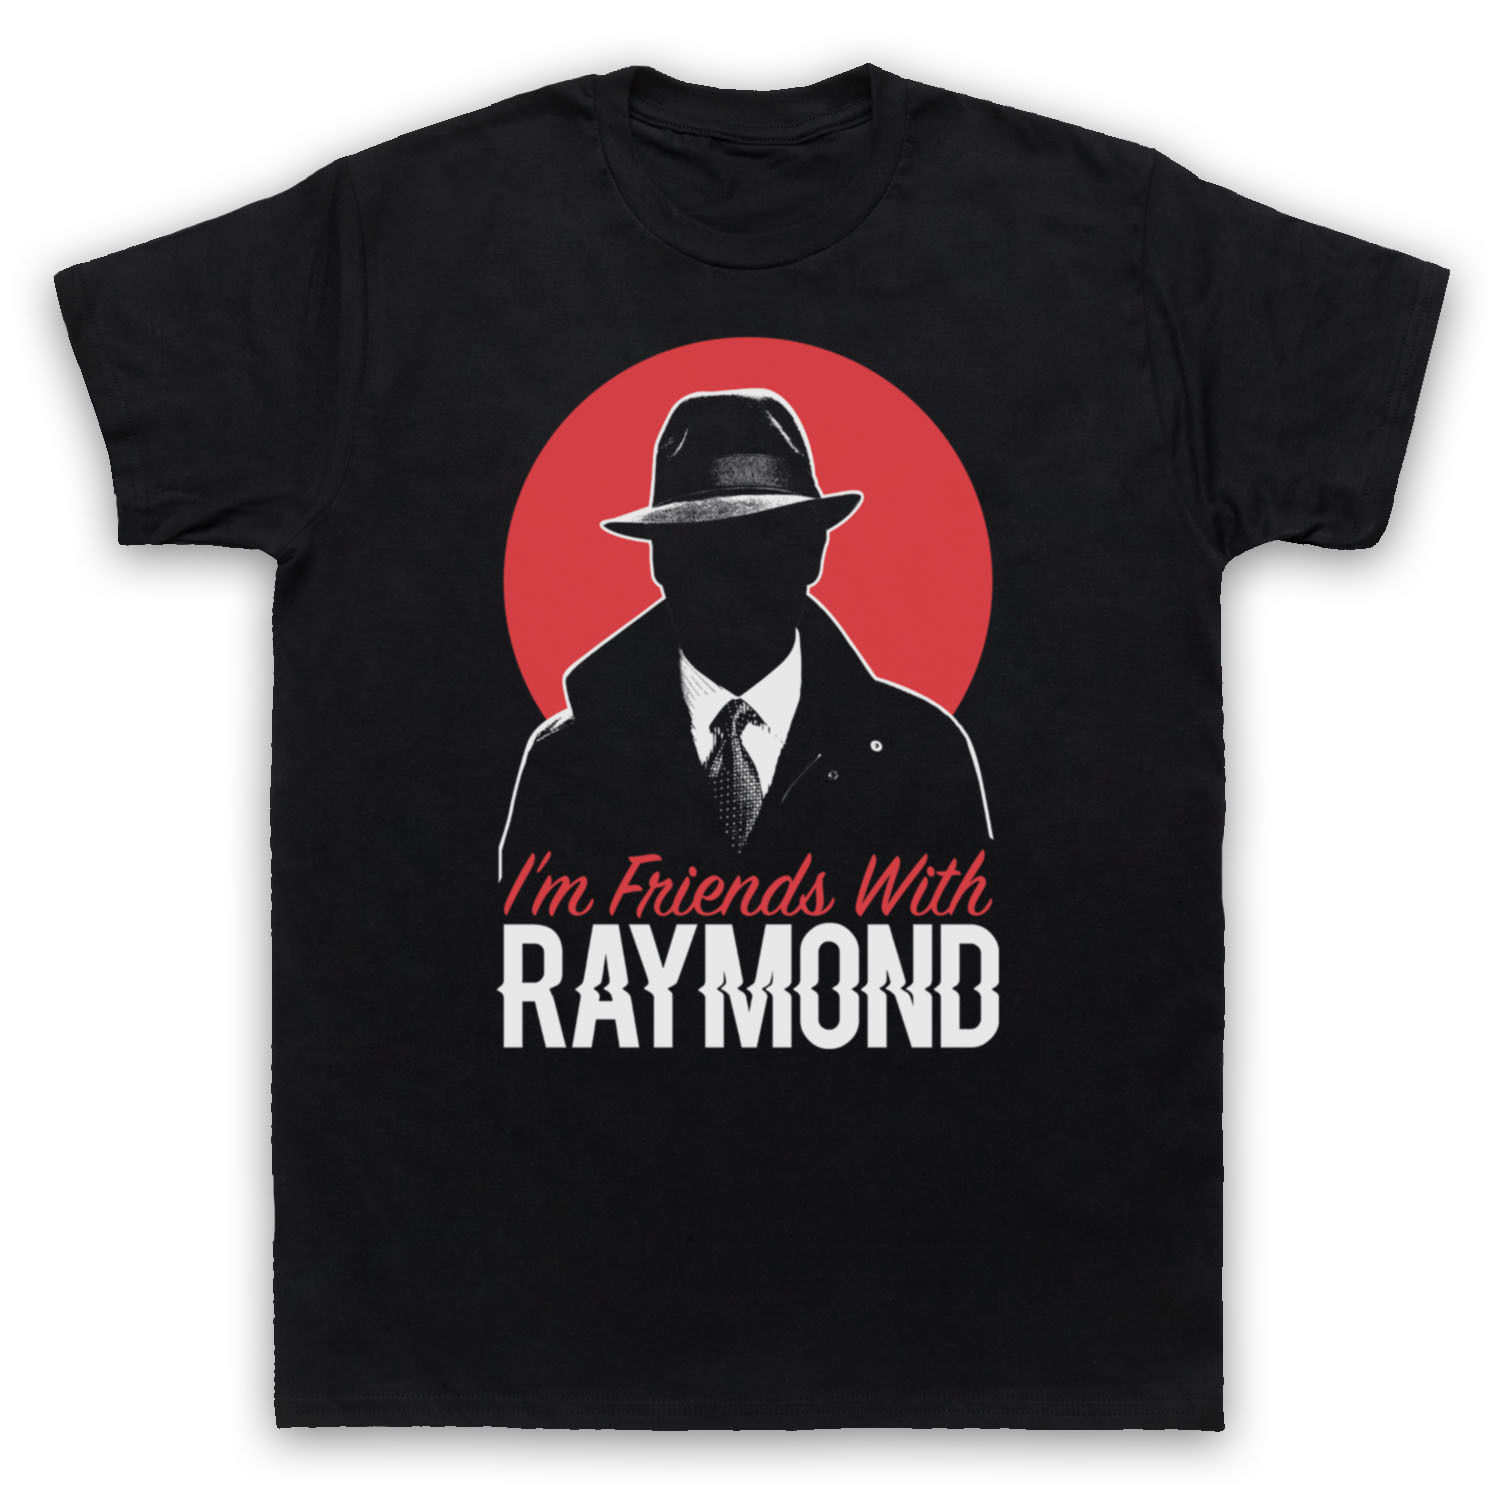 THE UNOFFICIAL BLACKLIST FRIENDS WITH RAYMOND T-SHIRT ADULTS & KIDS SIZES COLS ...